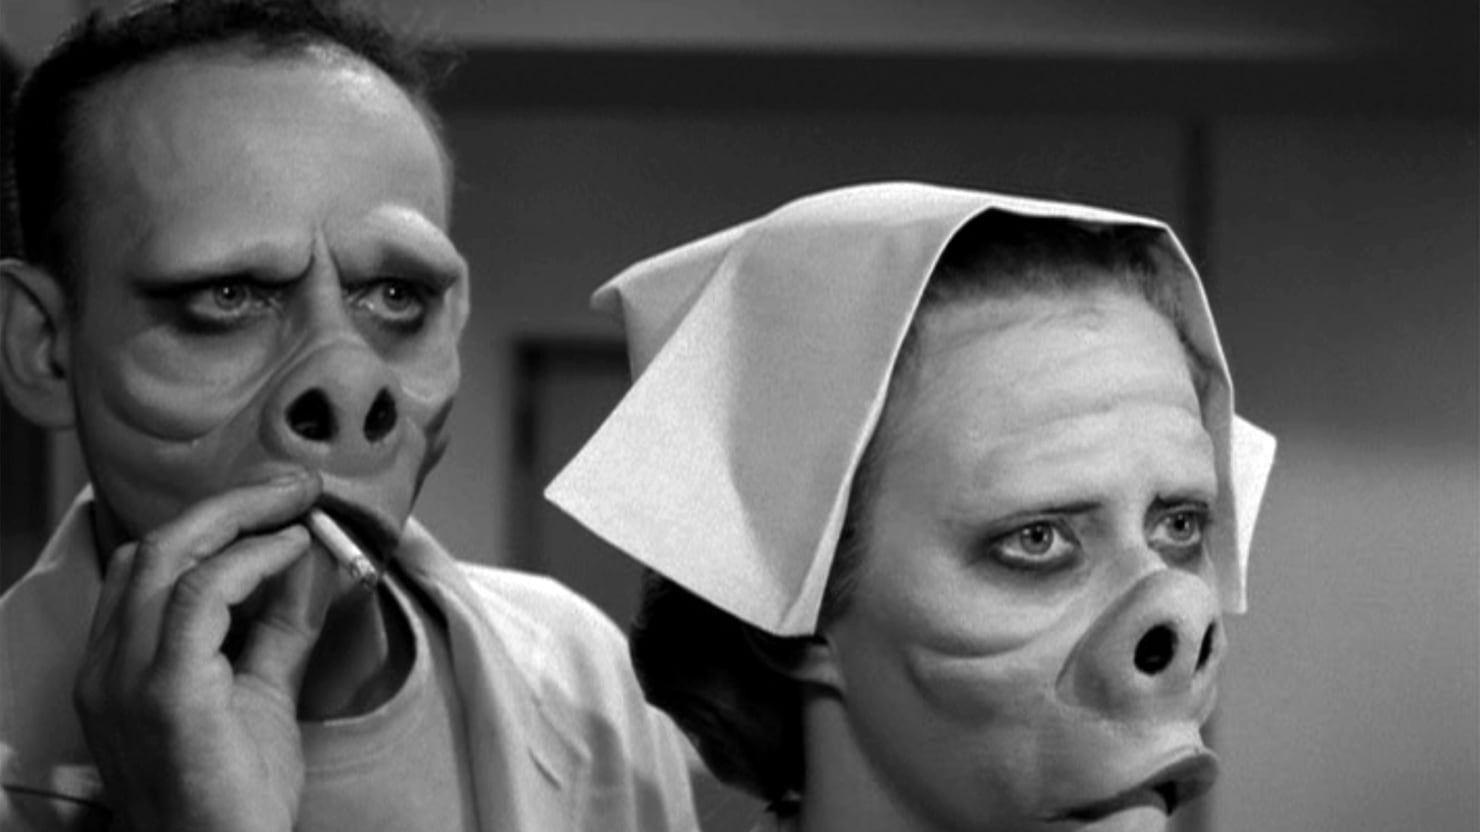 How a War-Weary Vet Created 'The Twilight Zone'